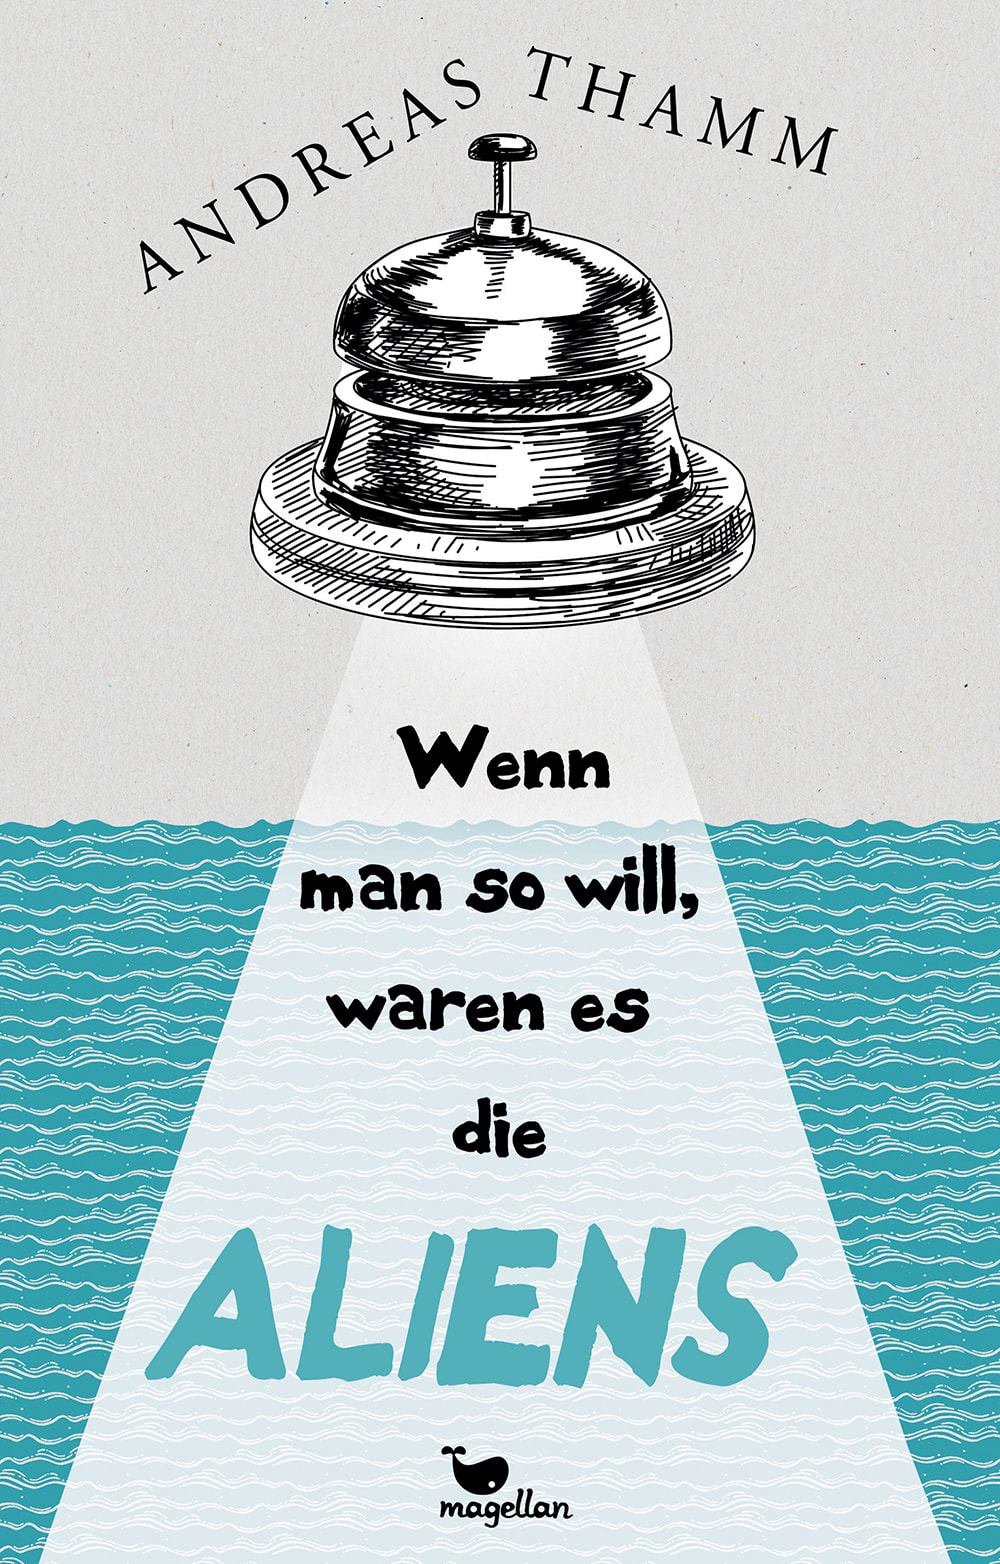 https://www.magellanverlag.de/titel/wenn-man-so-will-waren-es-die-aliens/542